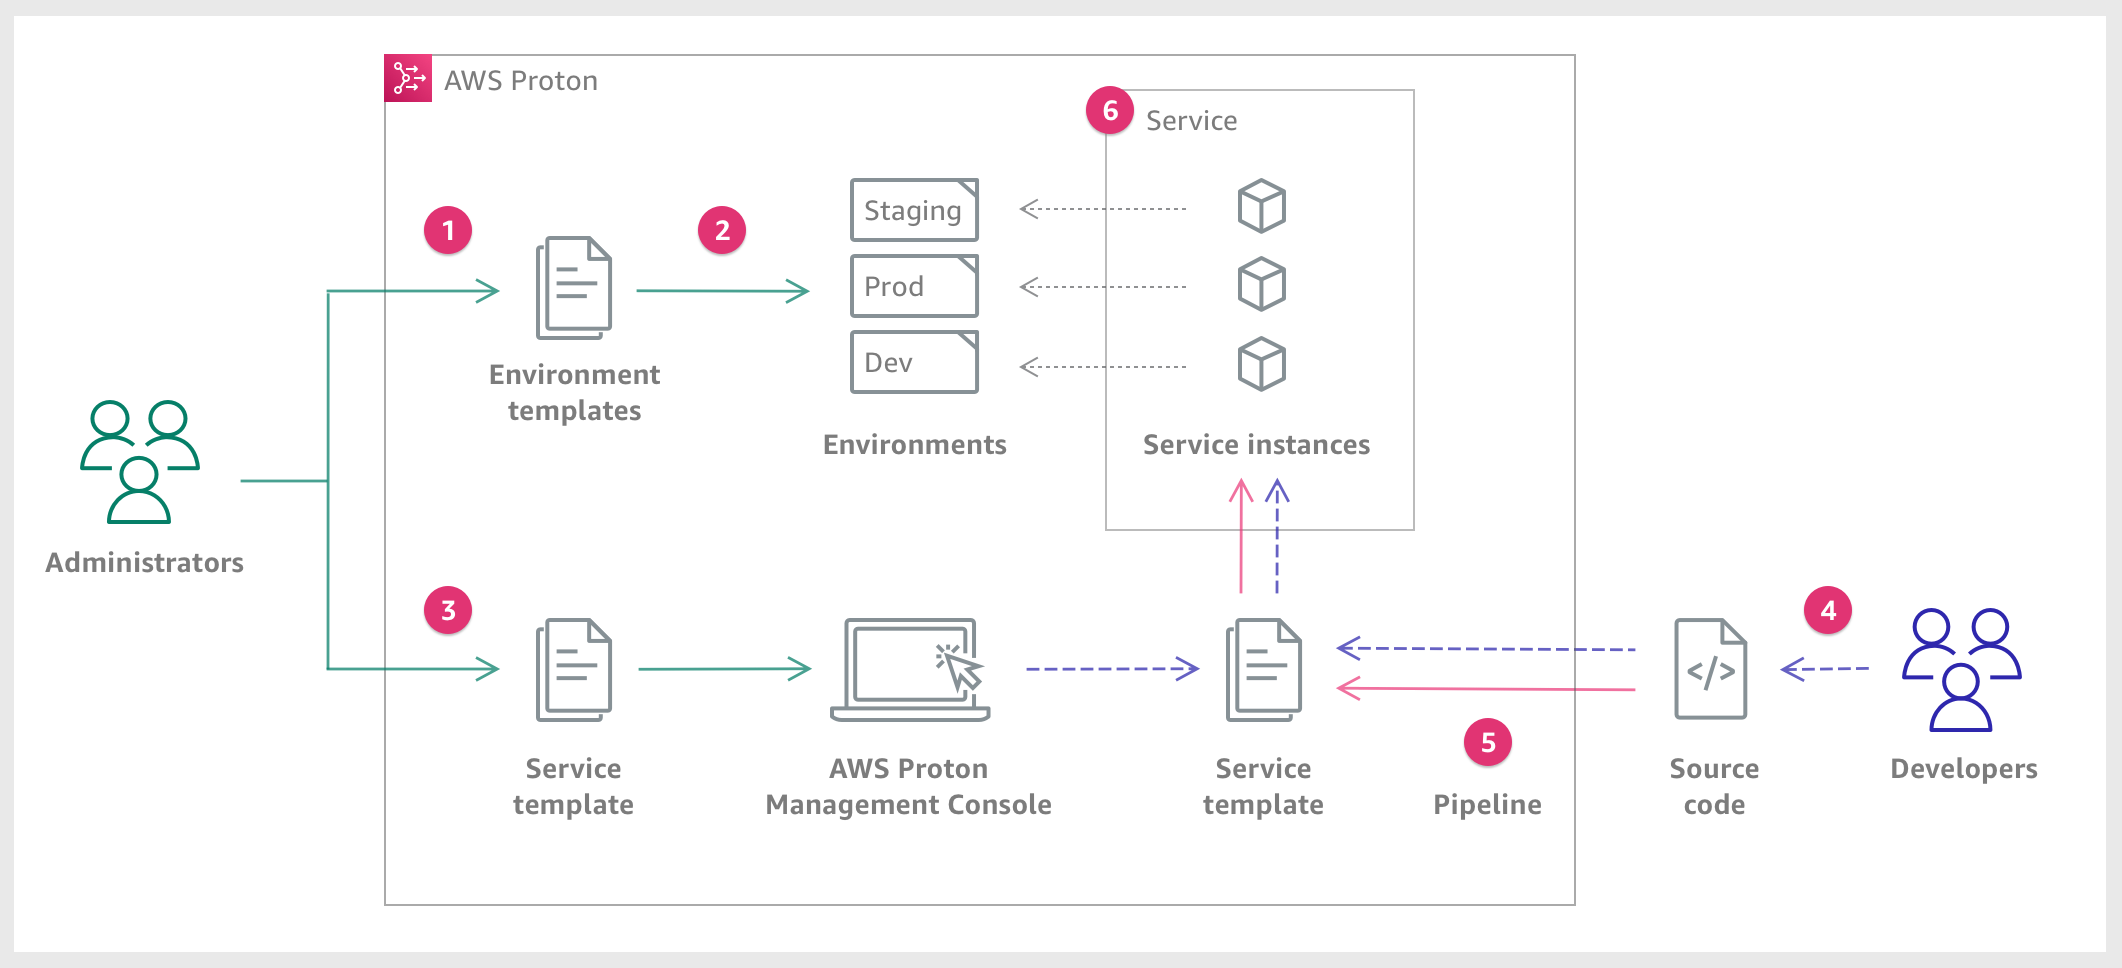 A diagram that describes the main AWS Proton concepts discussed in the preceding paragraph. It also offers a high-level overview of what constitutes a simple AWS Proton workflow divided into the following six steps.